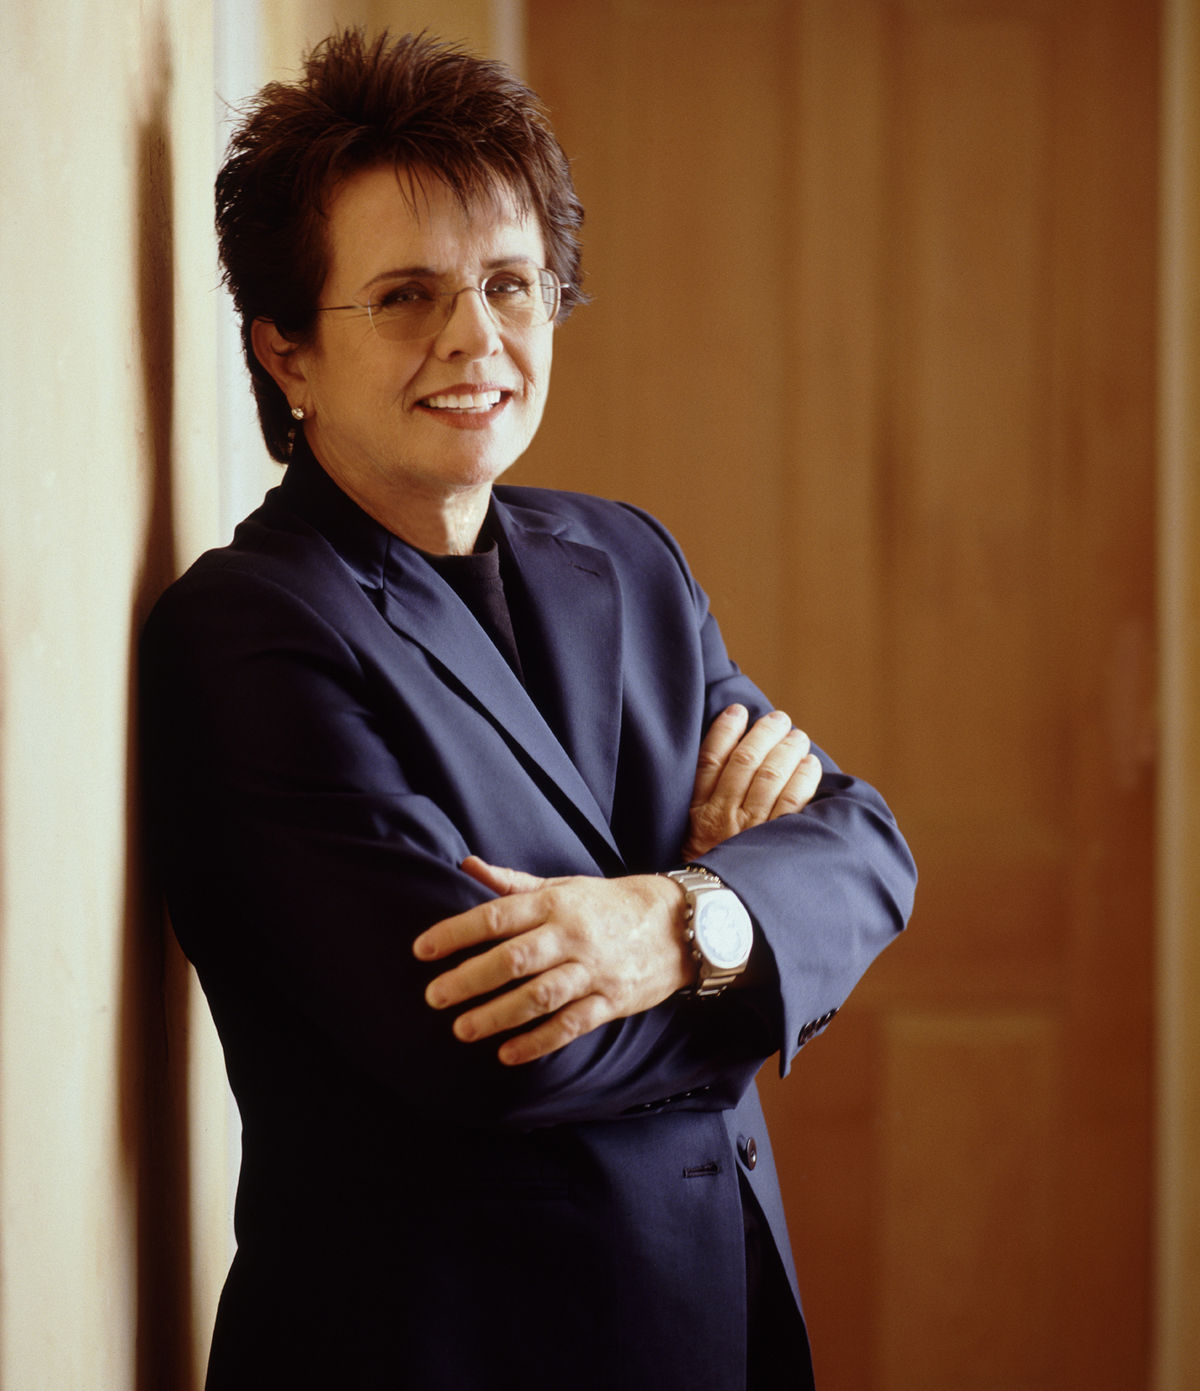 Billie Jean King career statistics